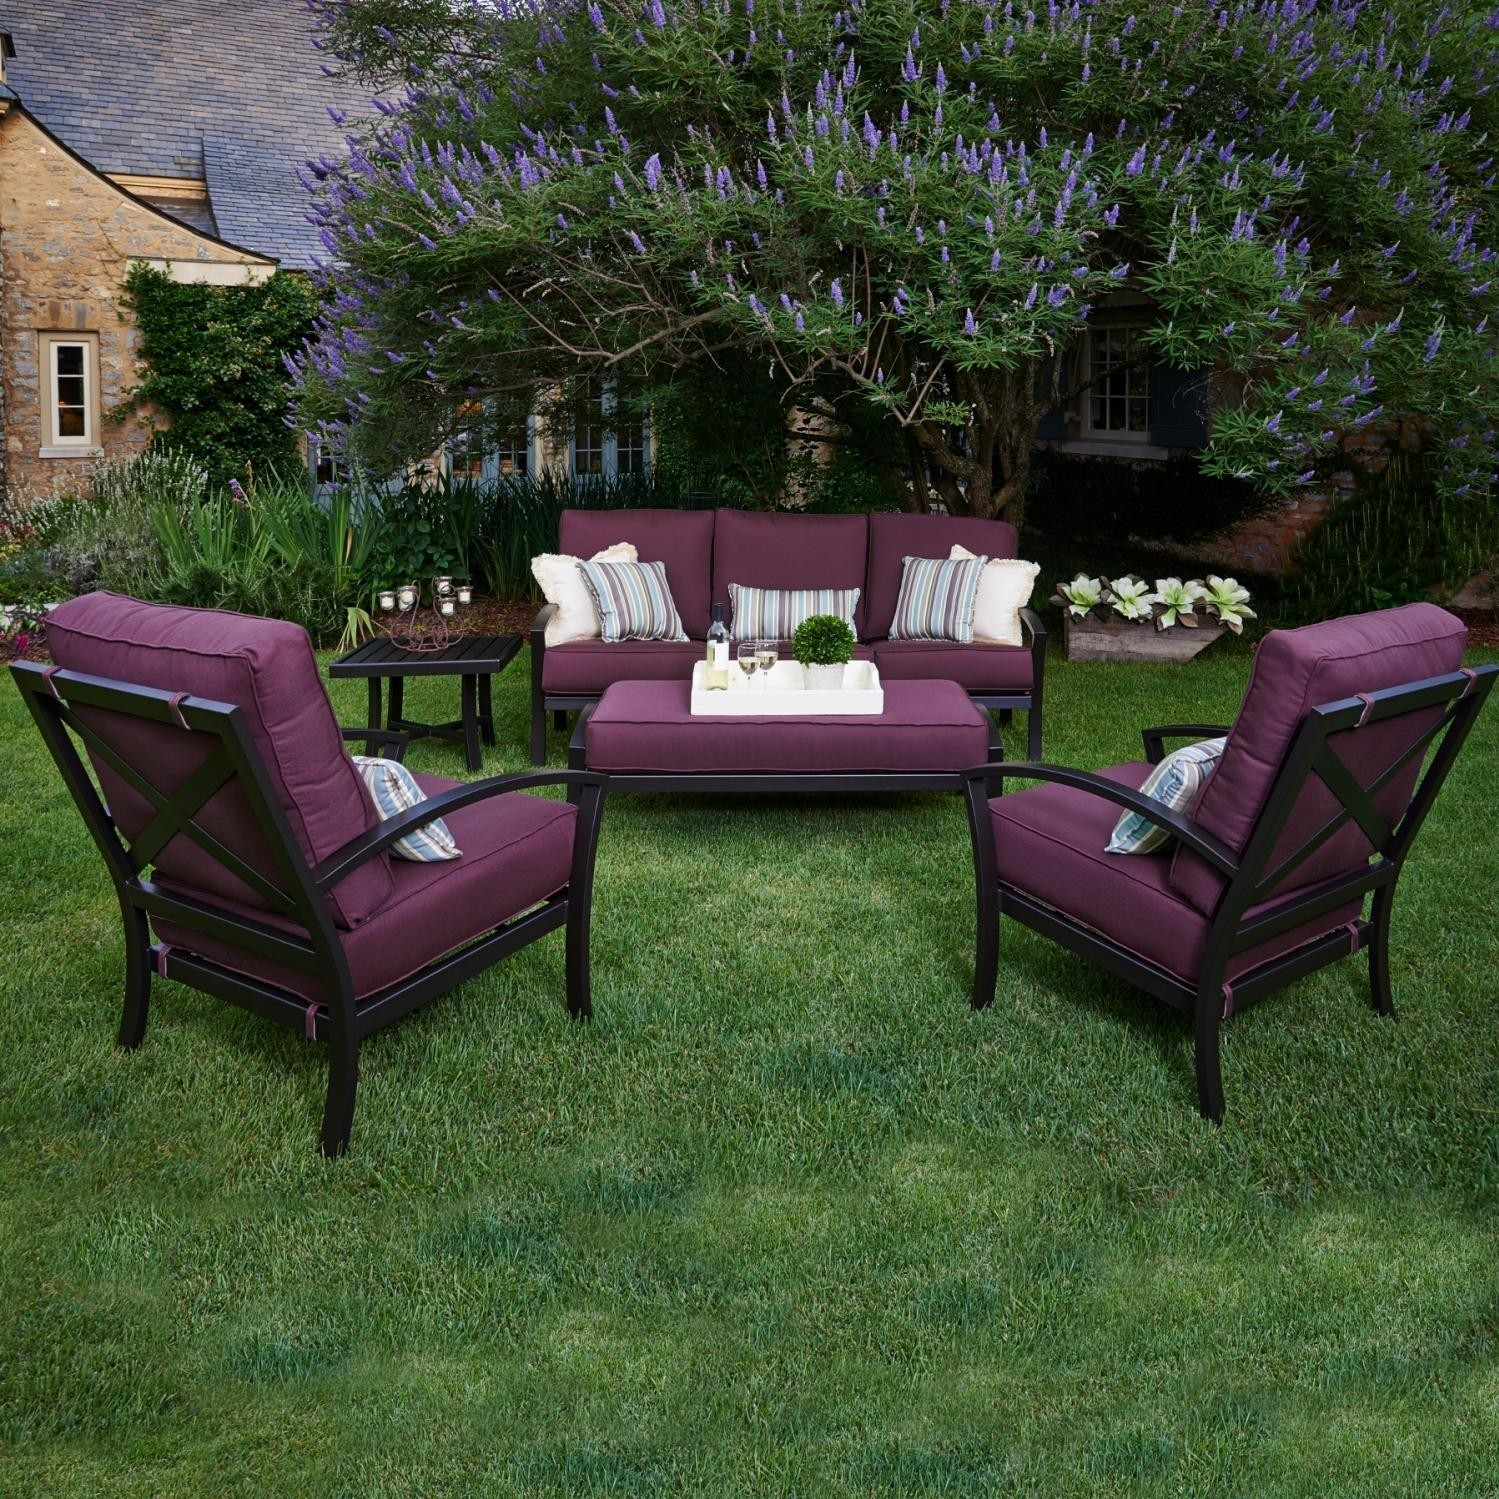 Meadowcraft Outdoor Furniture